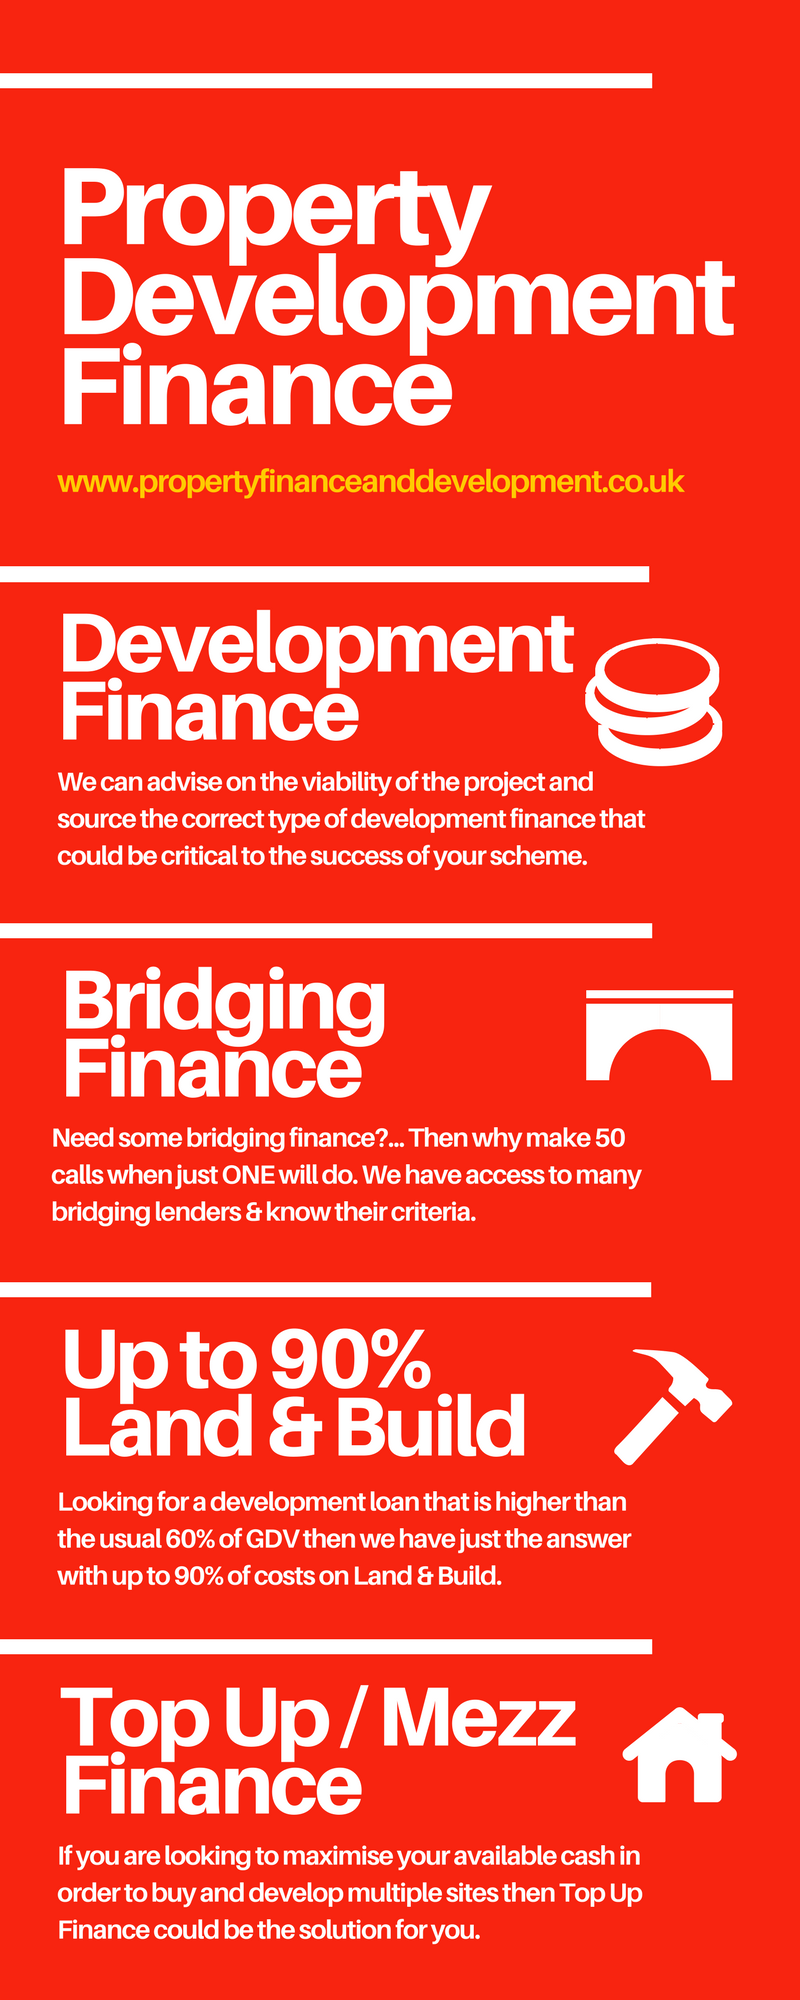 Property-development-finance-offerings-infographic-plaza